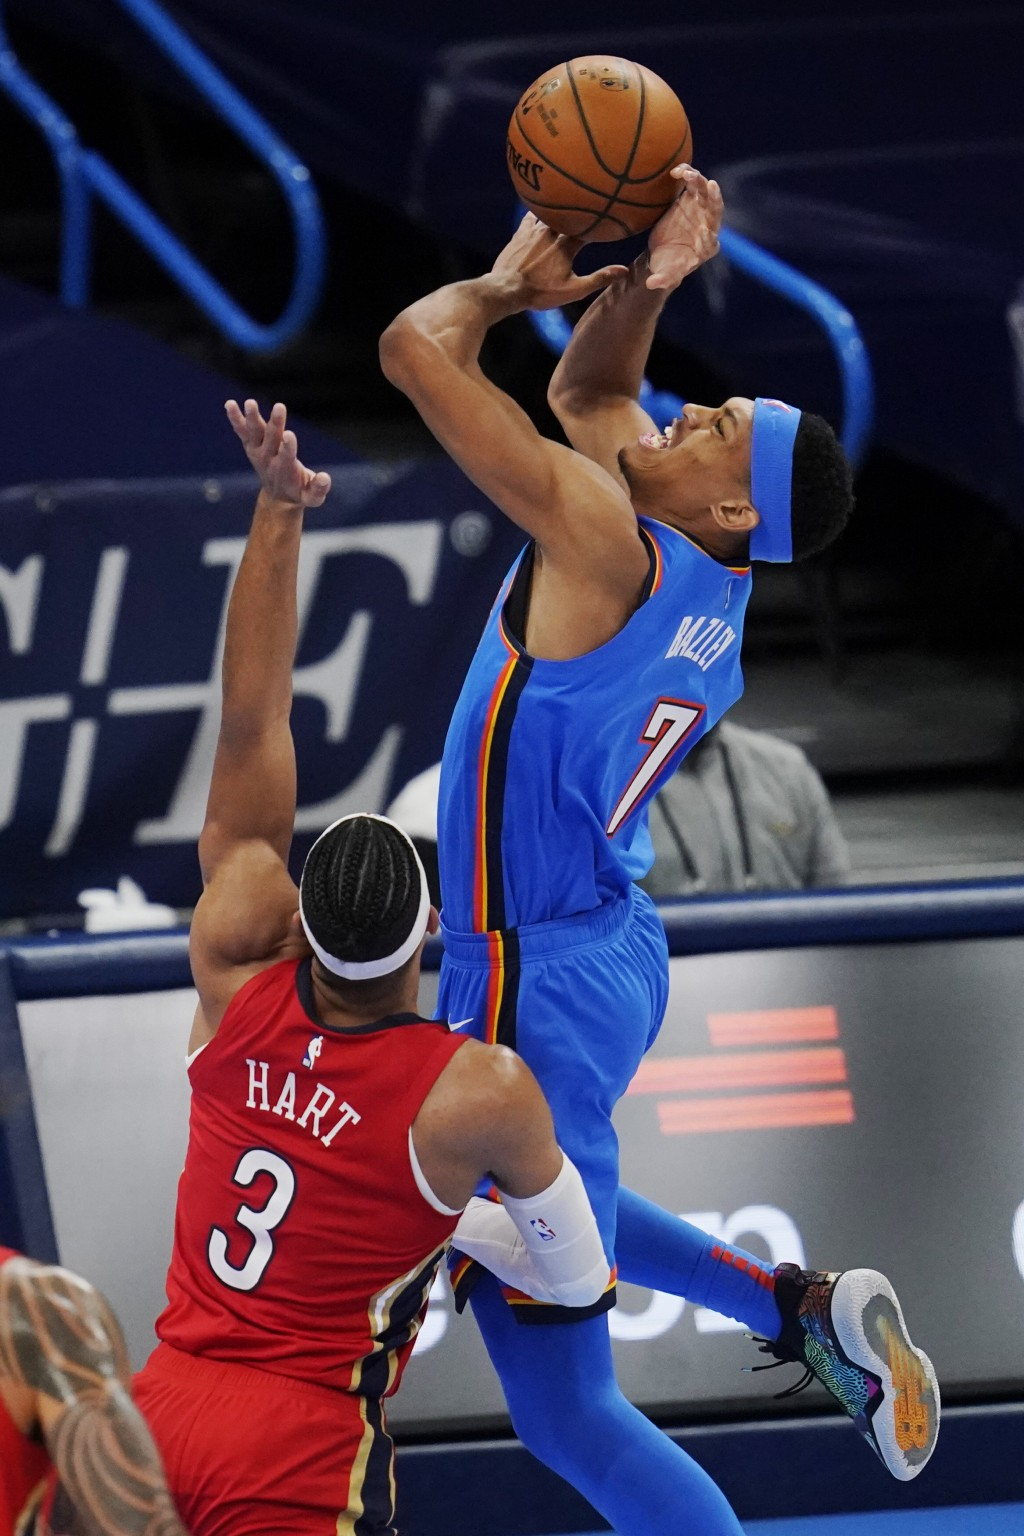 Oklahoma City Thunder forward Darius Bazley (7) is fouled by New Orleans Pelicans guard Josh Hart (3) as he shoots during the second half of an NBA ba...